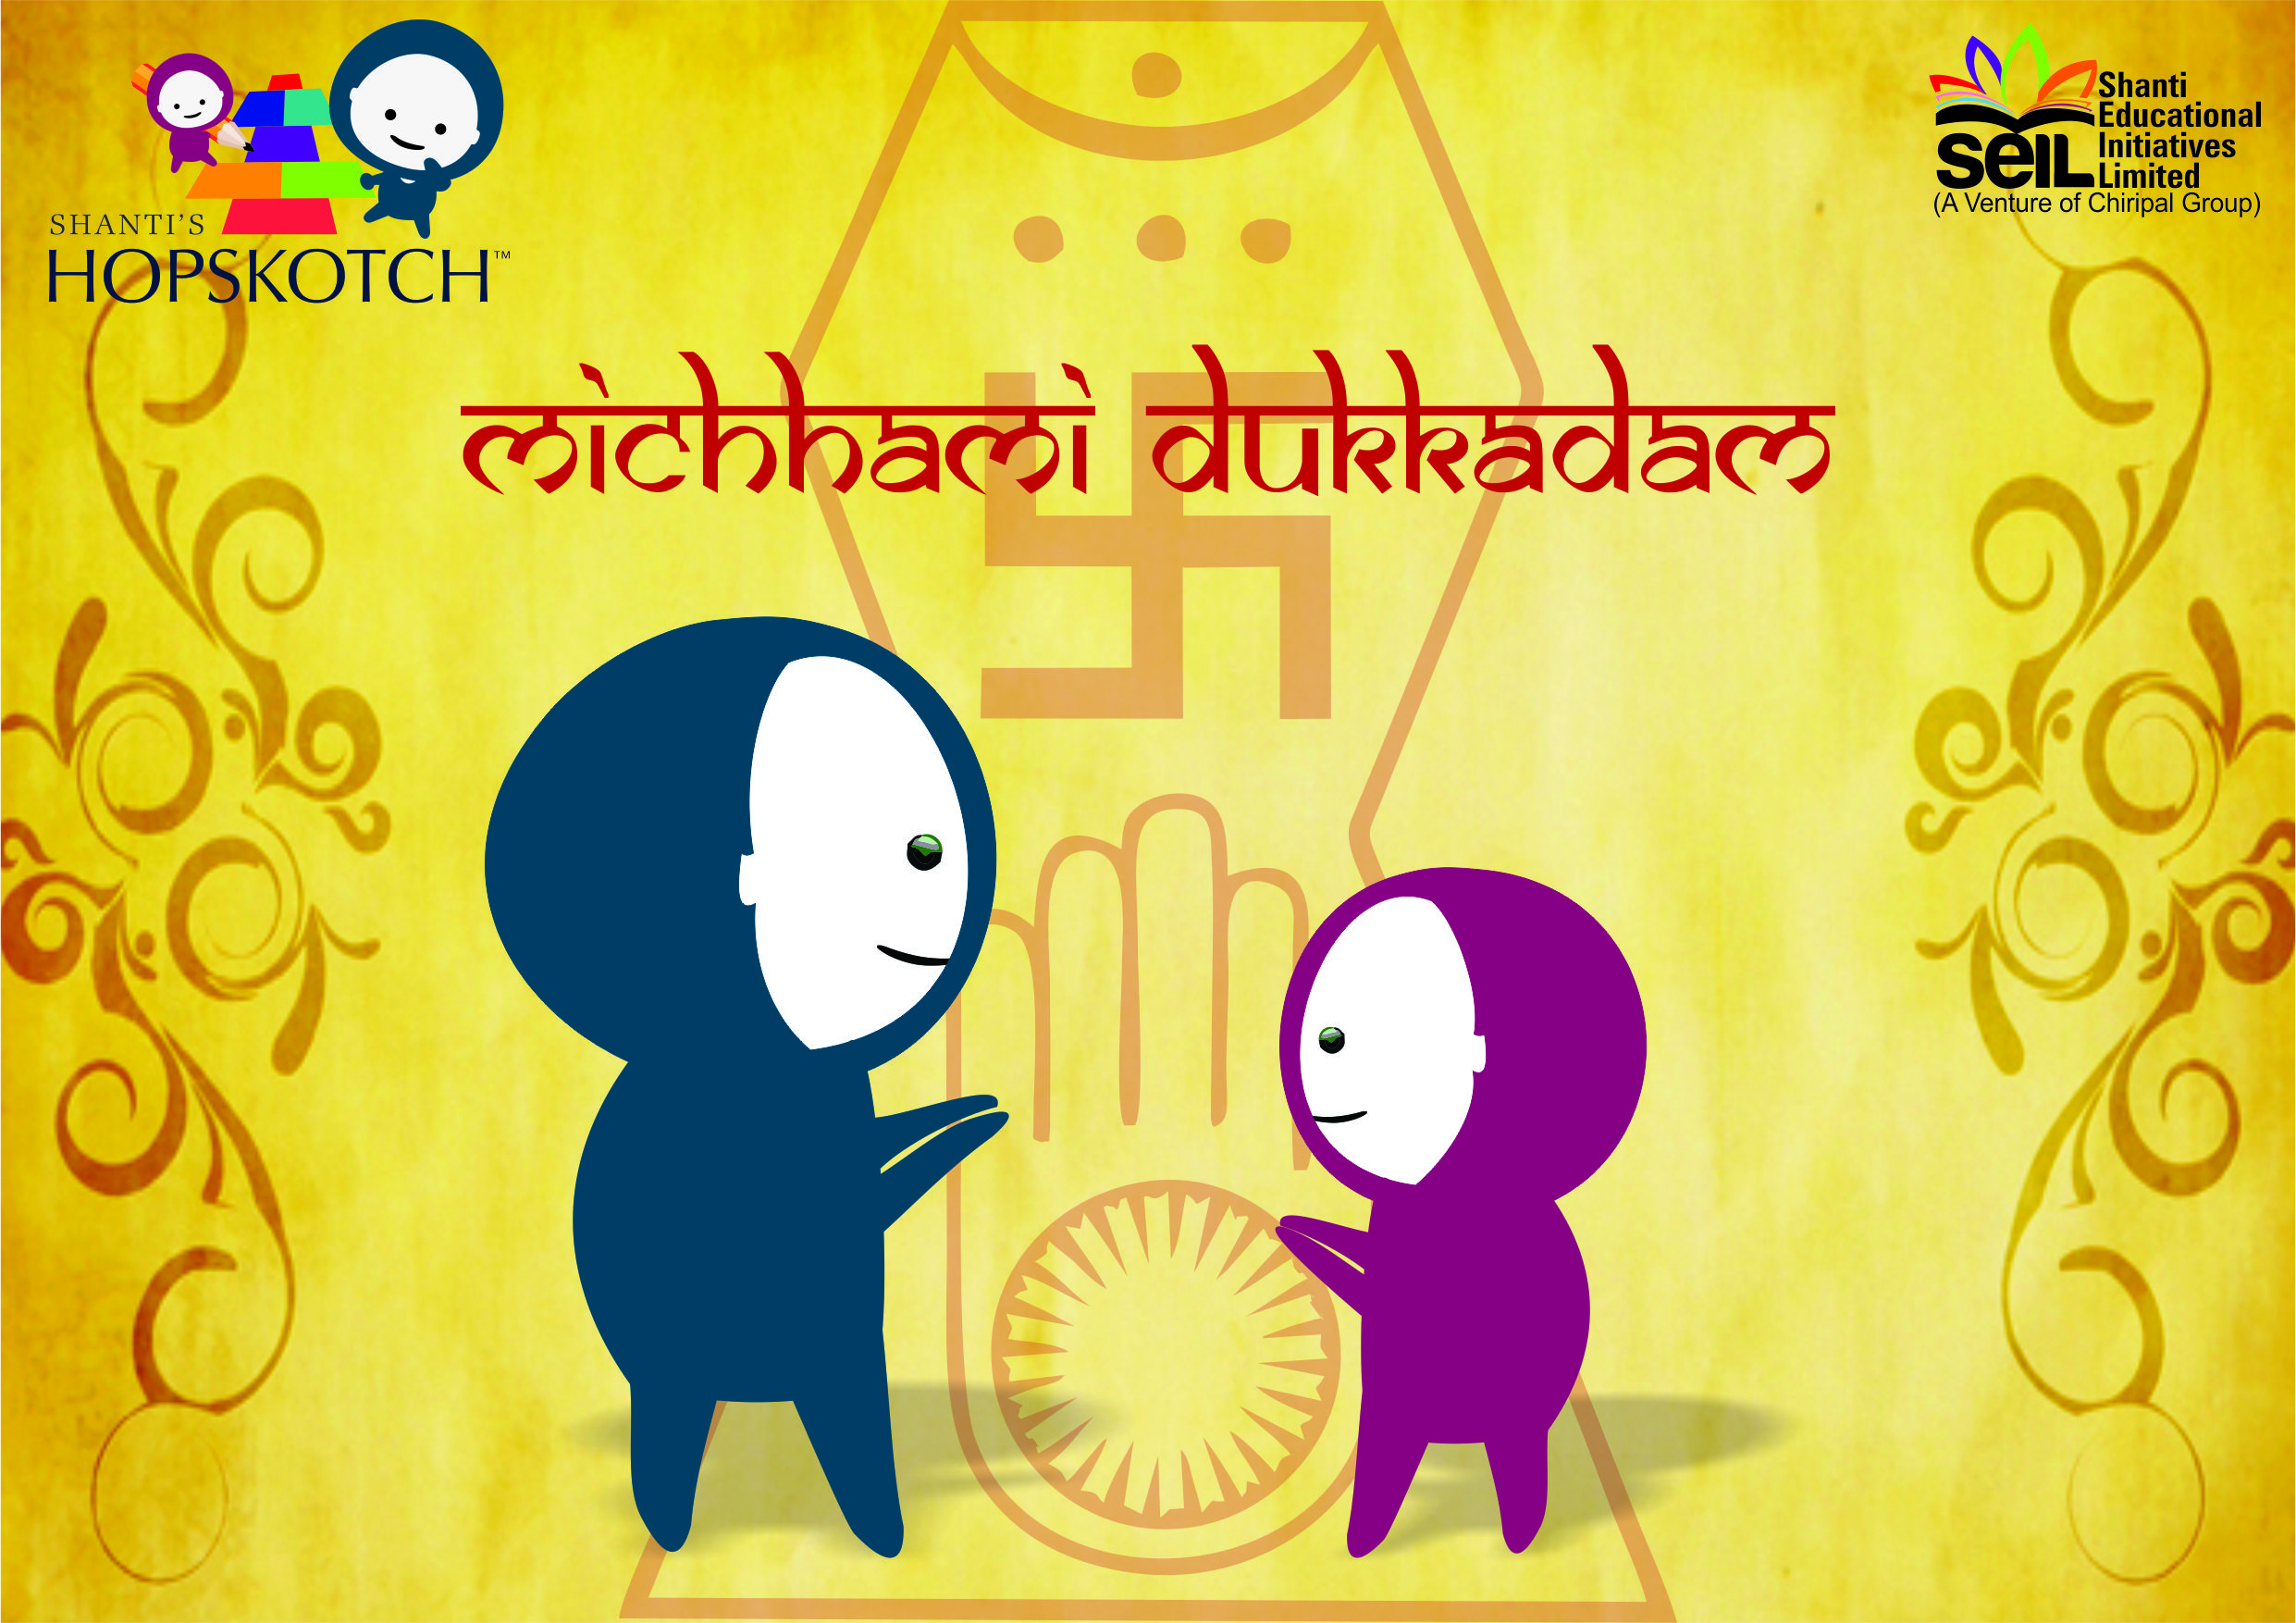 Best Preschool in India shanti hopskotch asks On this Holy Day of Mahaparva Parsyushan,   for Your Forgivness If Knowingly or Unknowingly we where Wrong On Our Deed, Word, or Action.  MICHAMI DUKHDAM